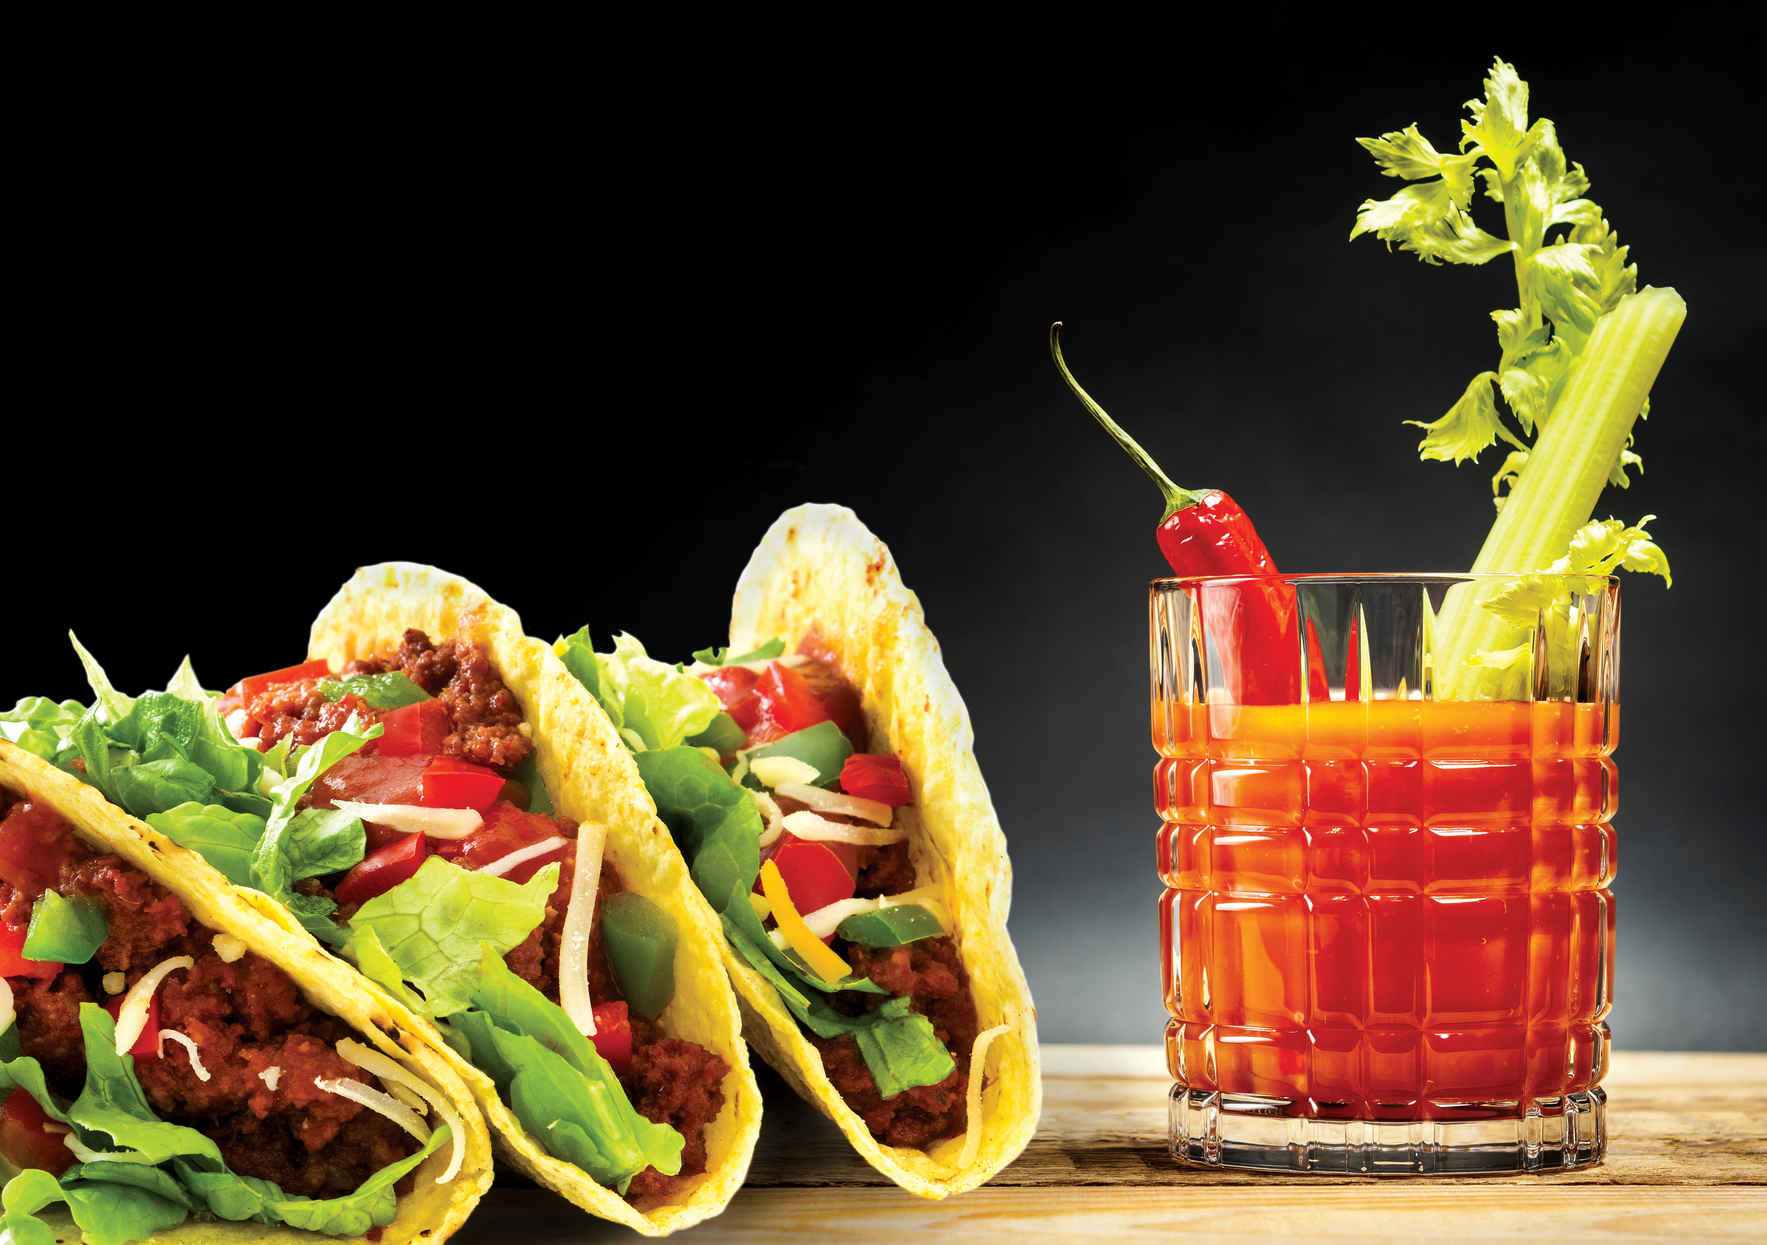 TACO THROWDOWN & BLOODY MARY CONTEST - Online ticket sales have closed, but tickets are available at the Gate. image